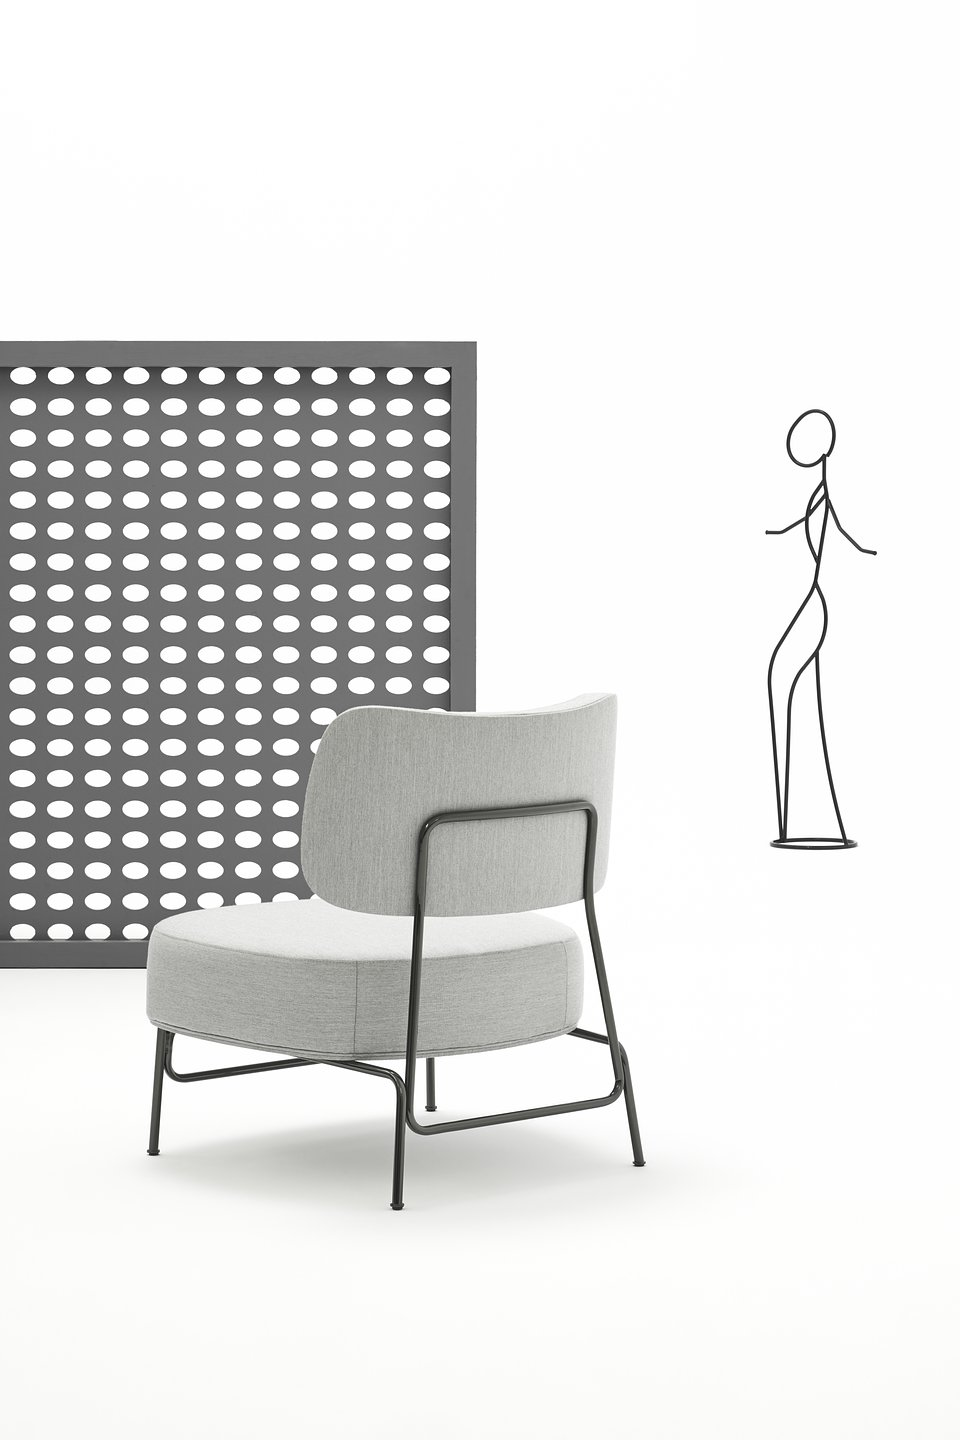 Kapoor Collection for Annud by Santiago Sevillano Studio (1).tif